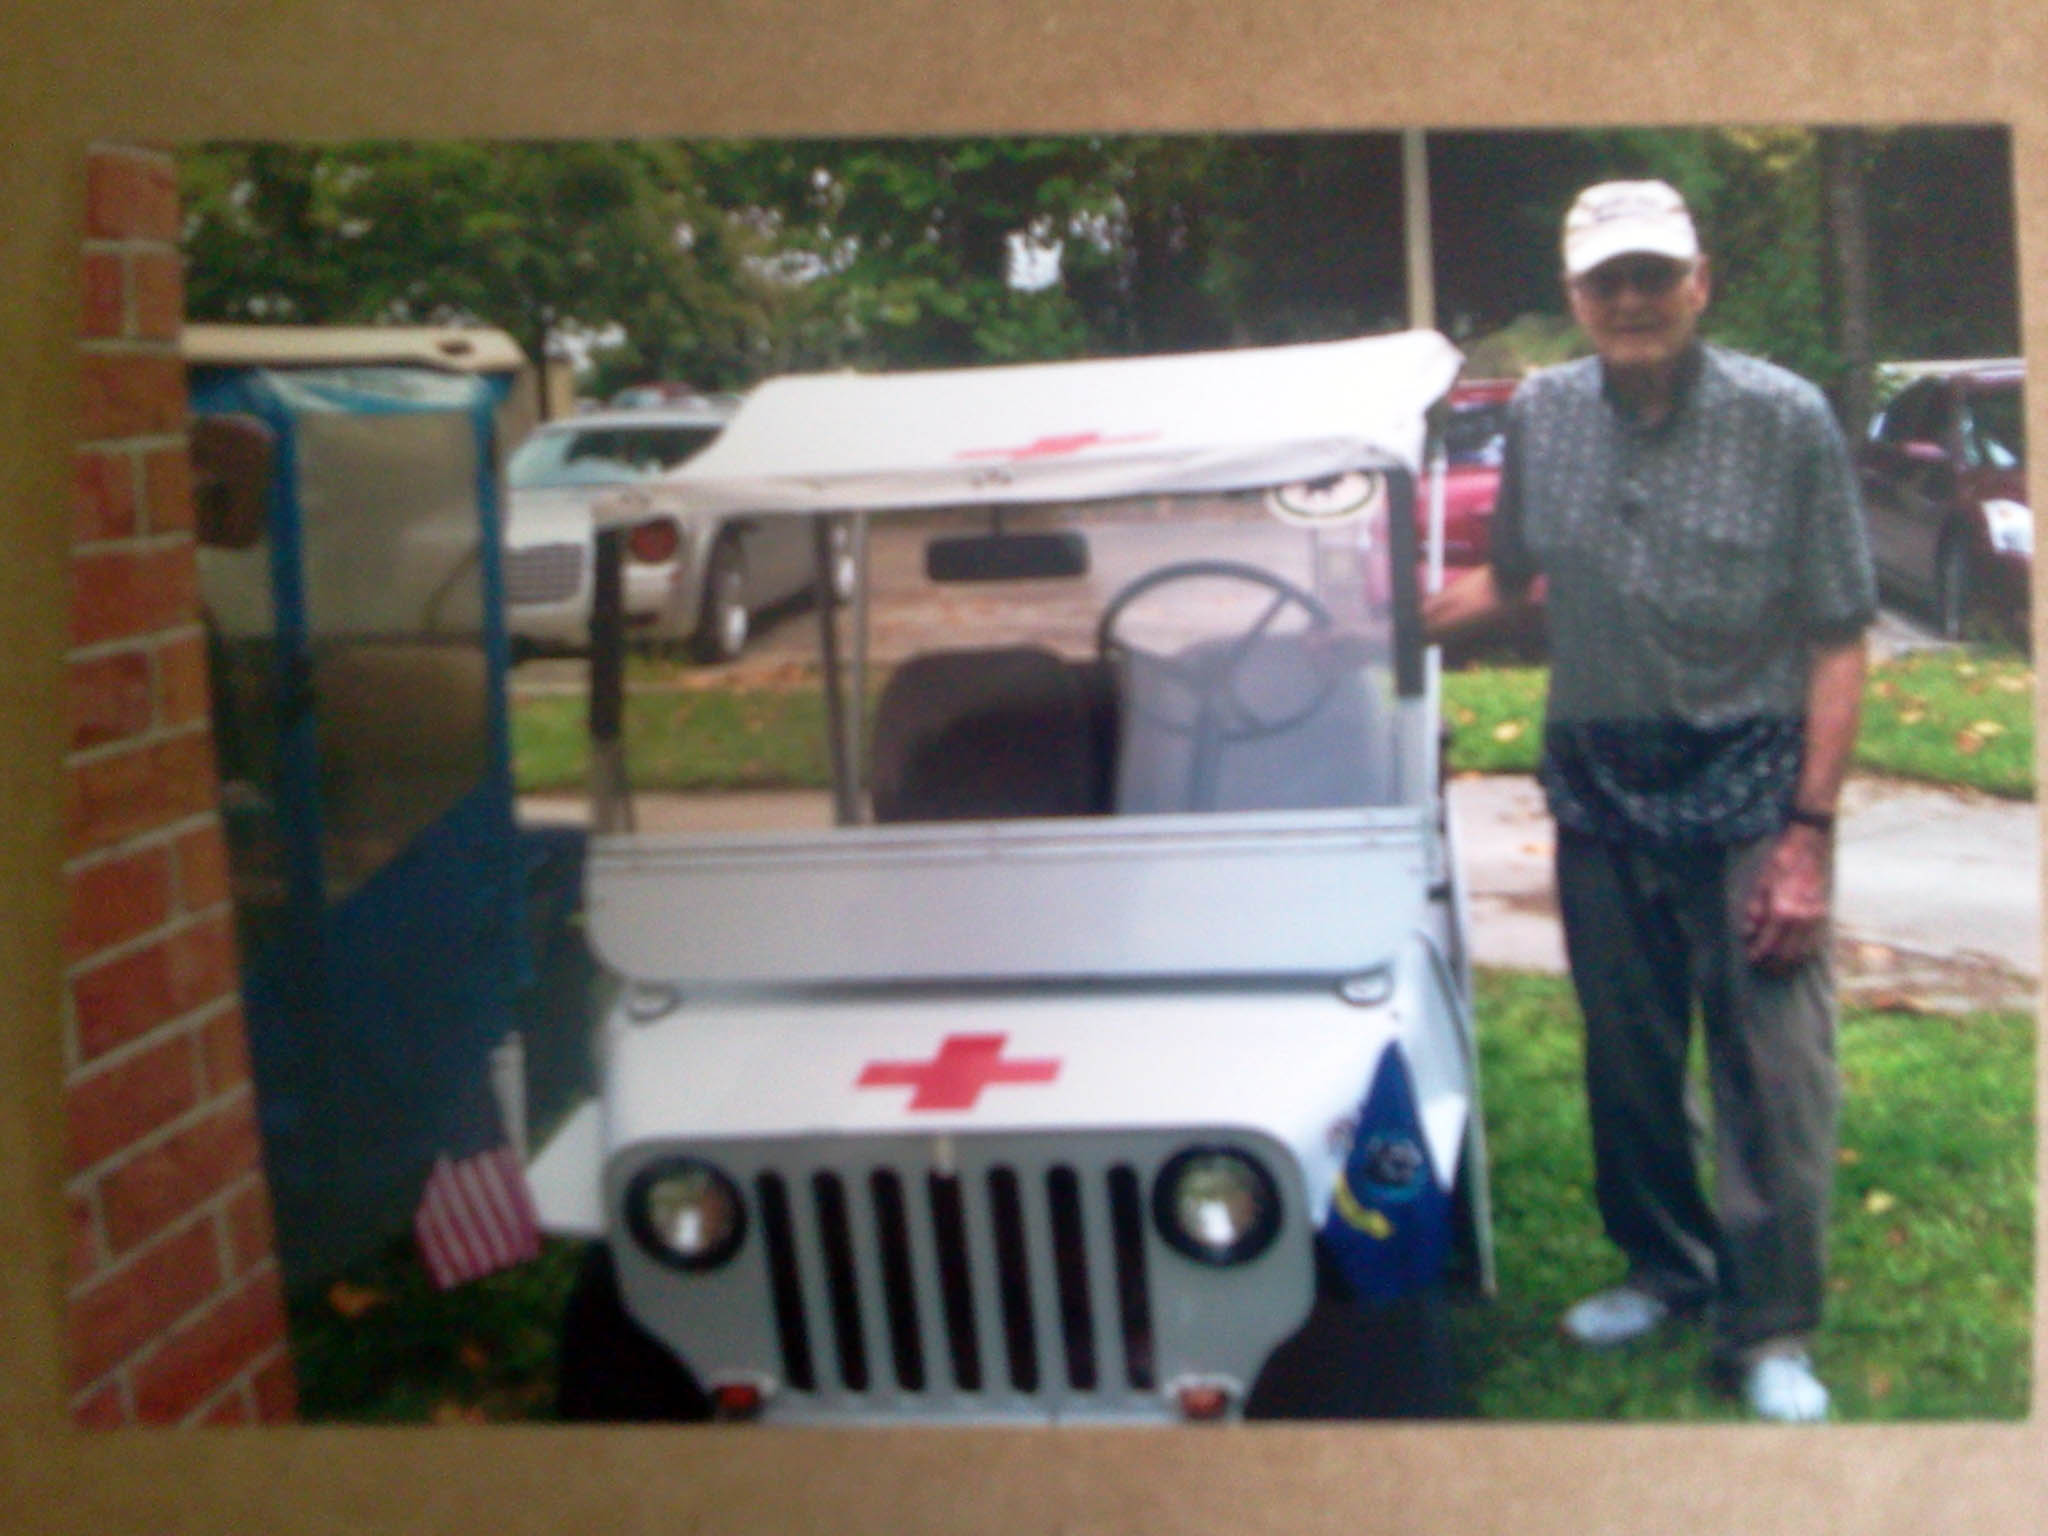 Jim and his Jeep Golf Cart, ready for some hamming!